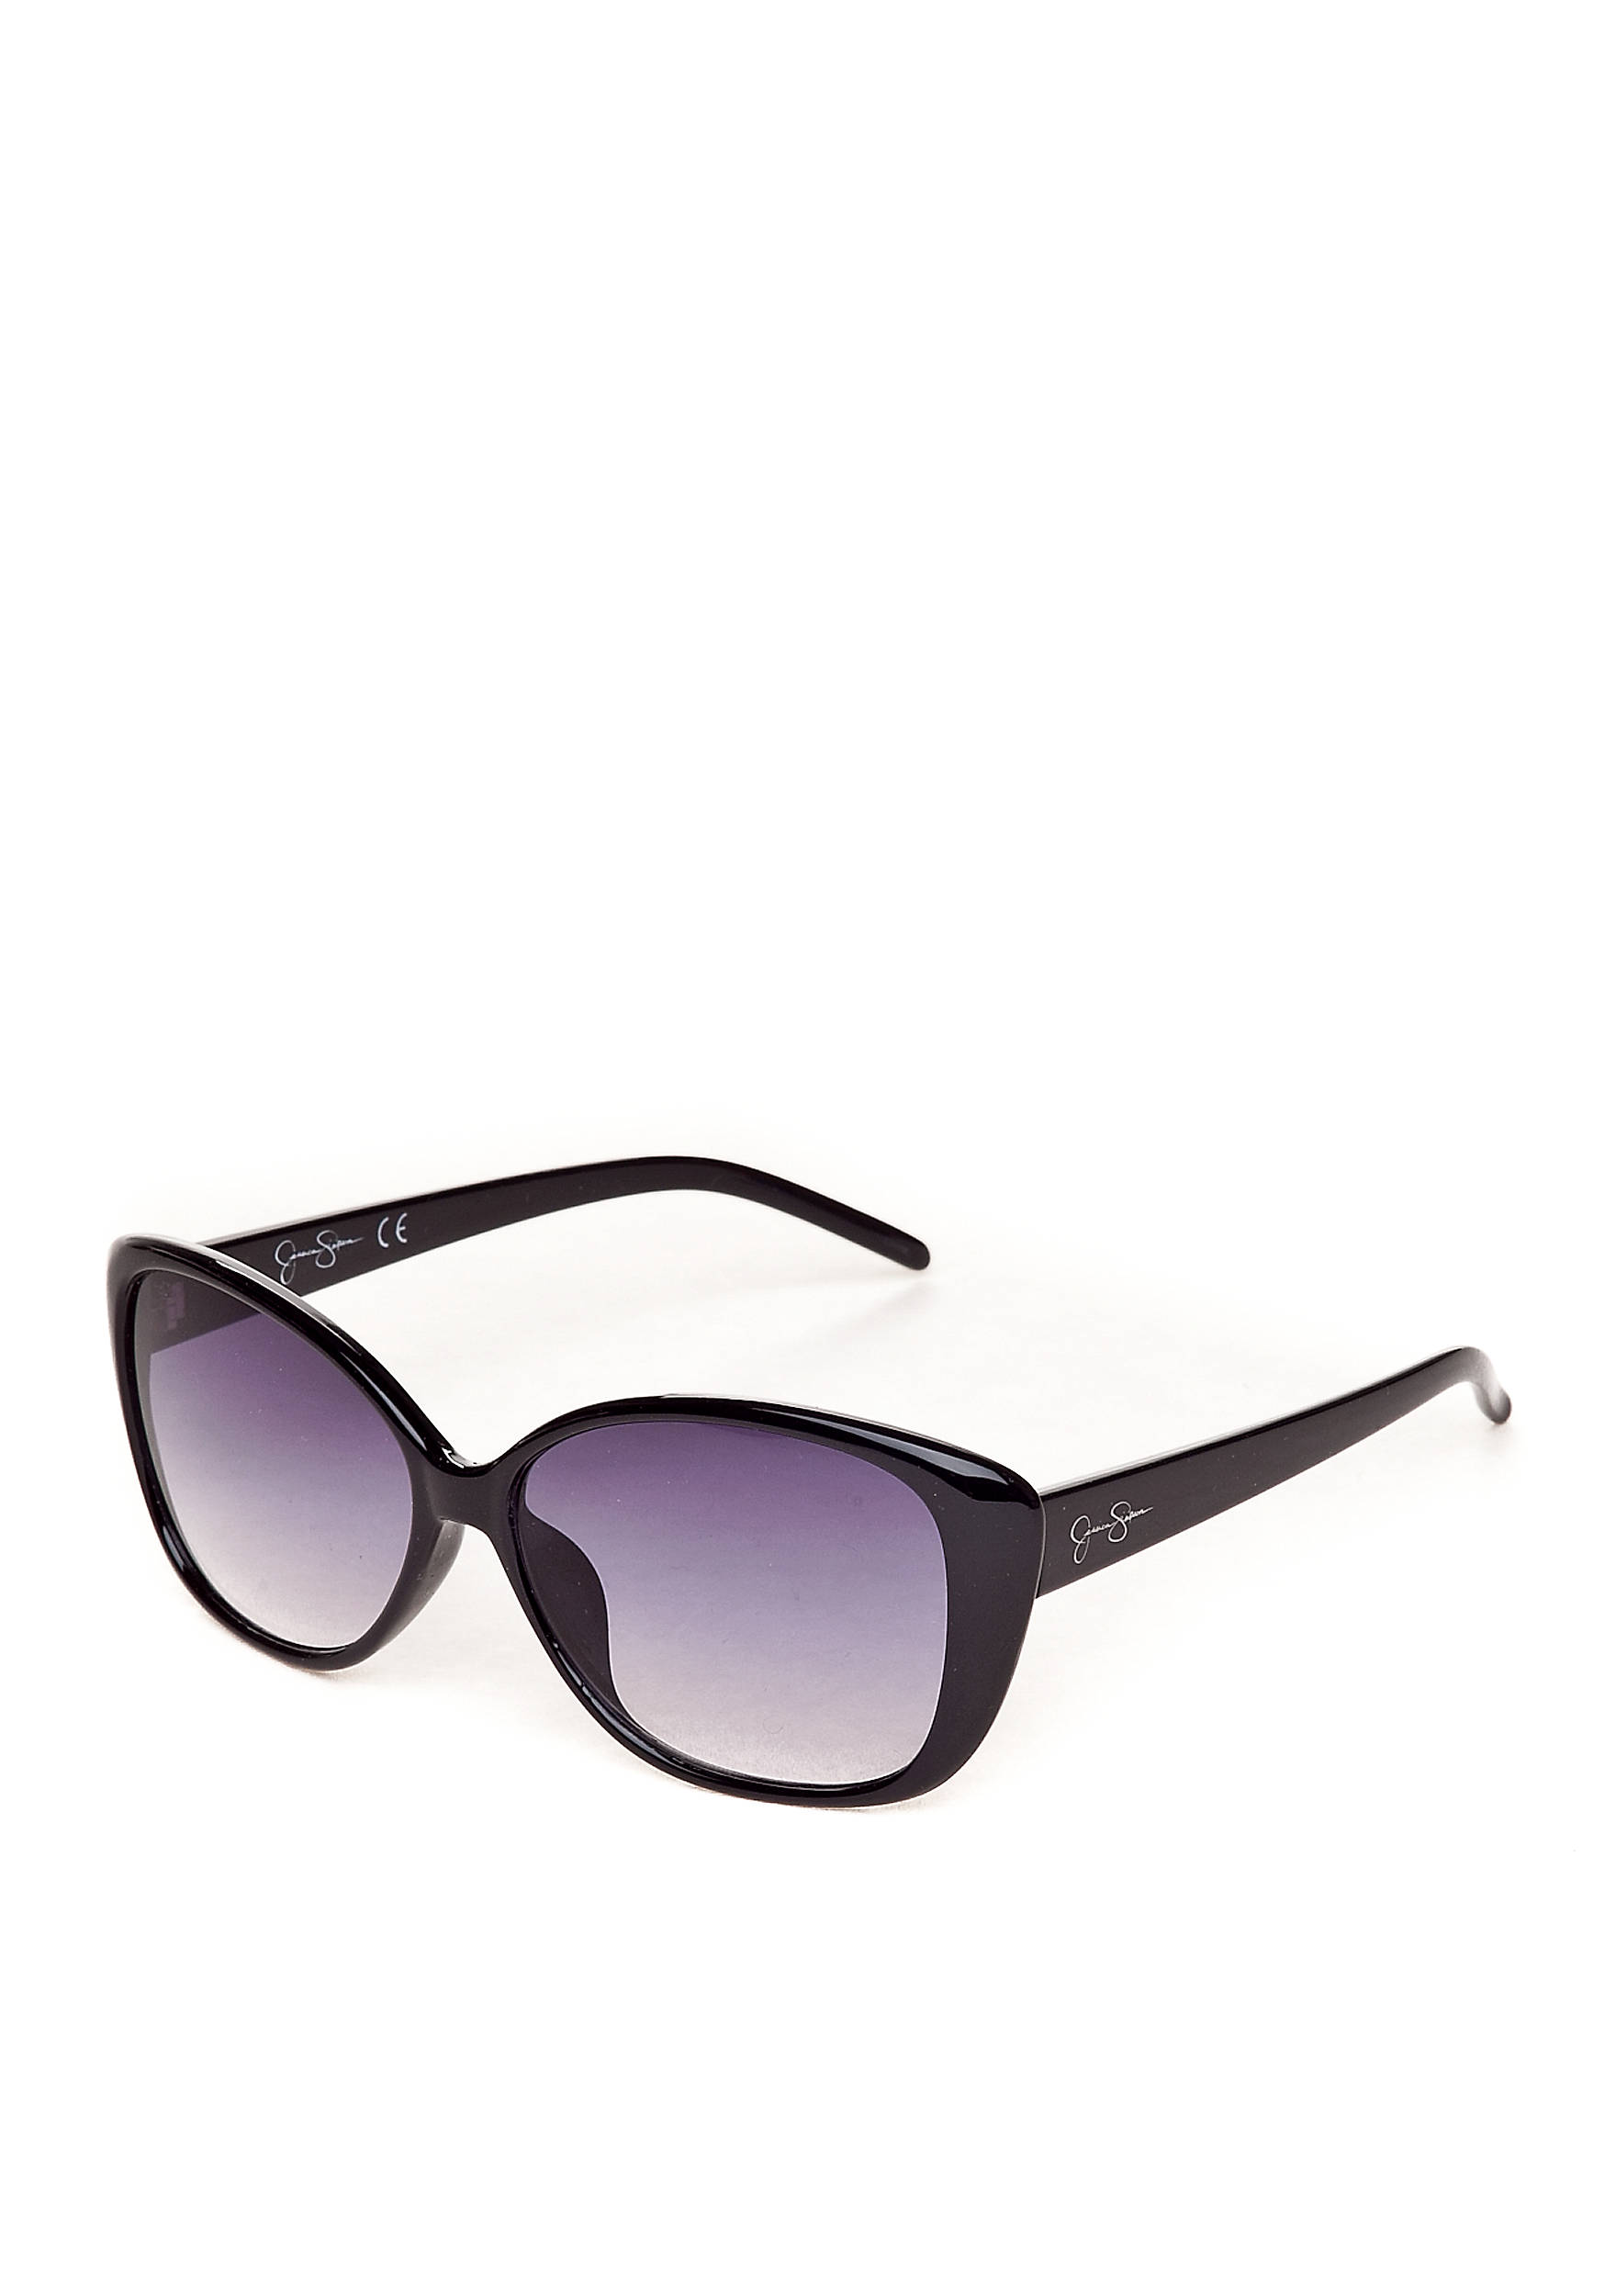 0e62589fec ... Jessica Simpson Cat Eye Sunglasses